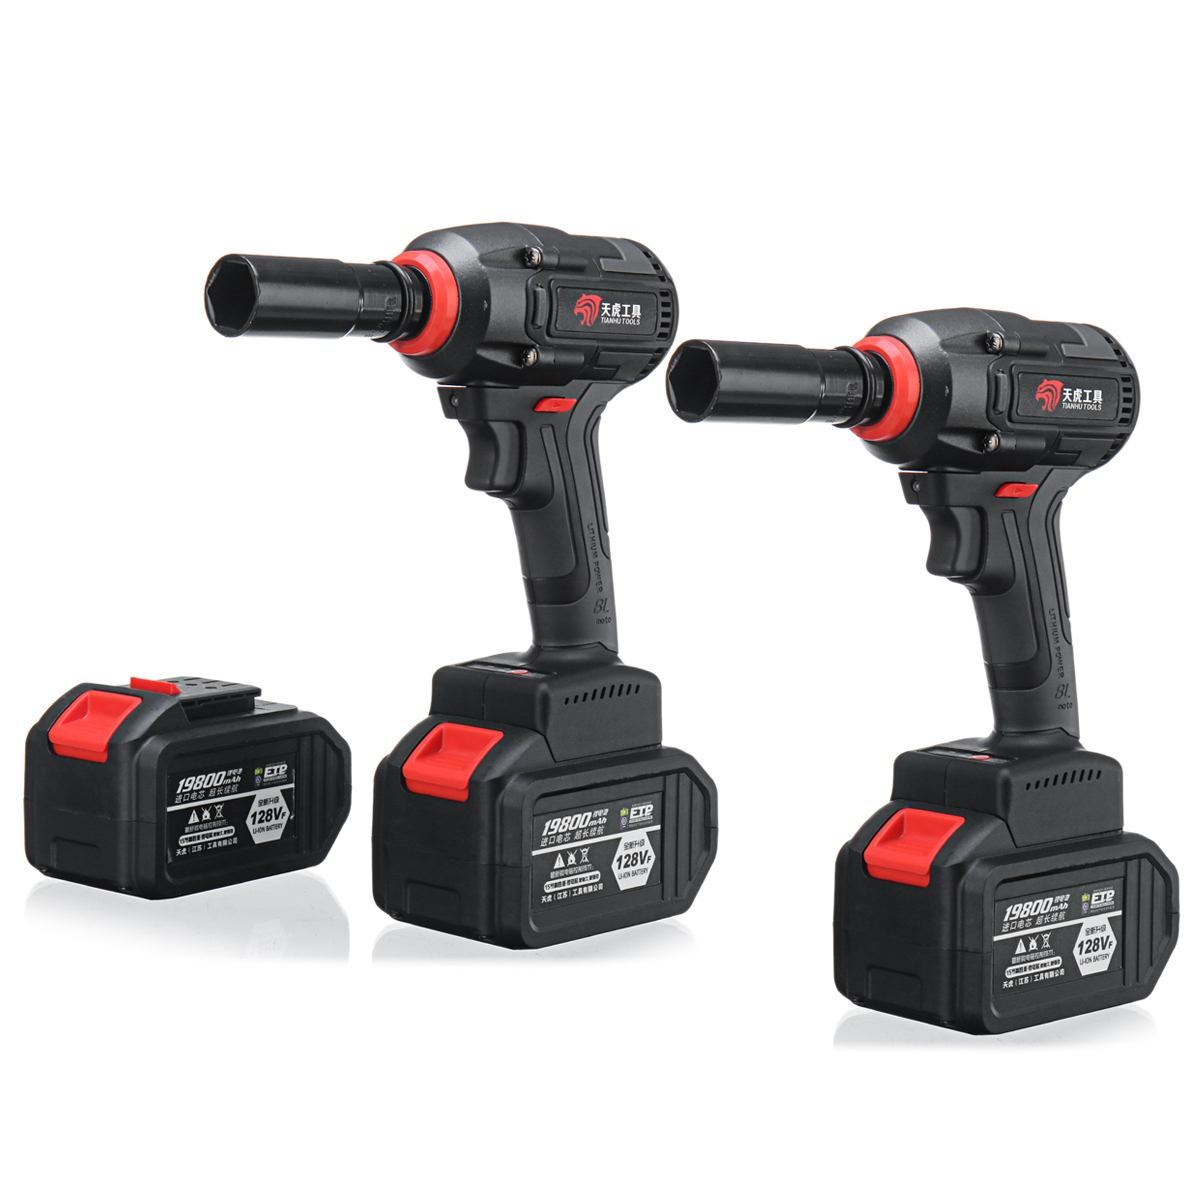 Brushless Electric Wrench 19800mAh Large Capacity Power Wrench Tool Batteries 110V-240VHand Drill Installation Power ToolsBrushless Electric Wrench 19800mAh Large Capacity Power Wrench Tool Batteries 110V-240VHand Drill Installation Power Tools